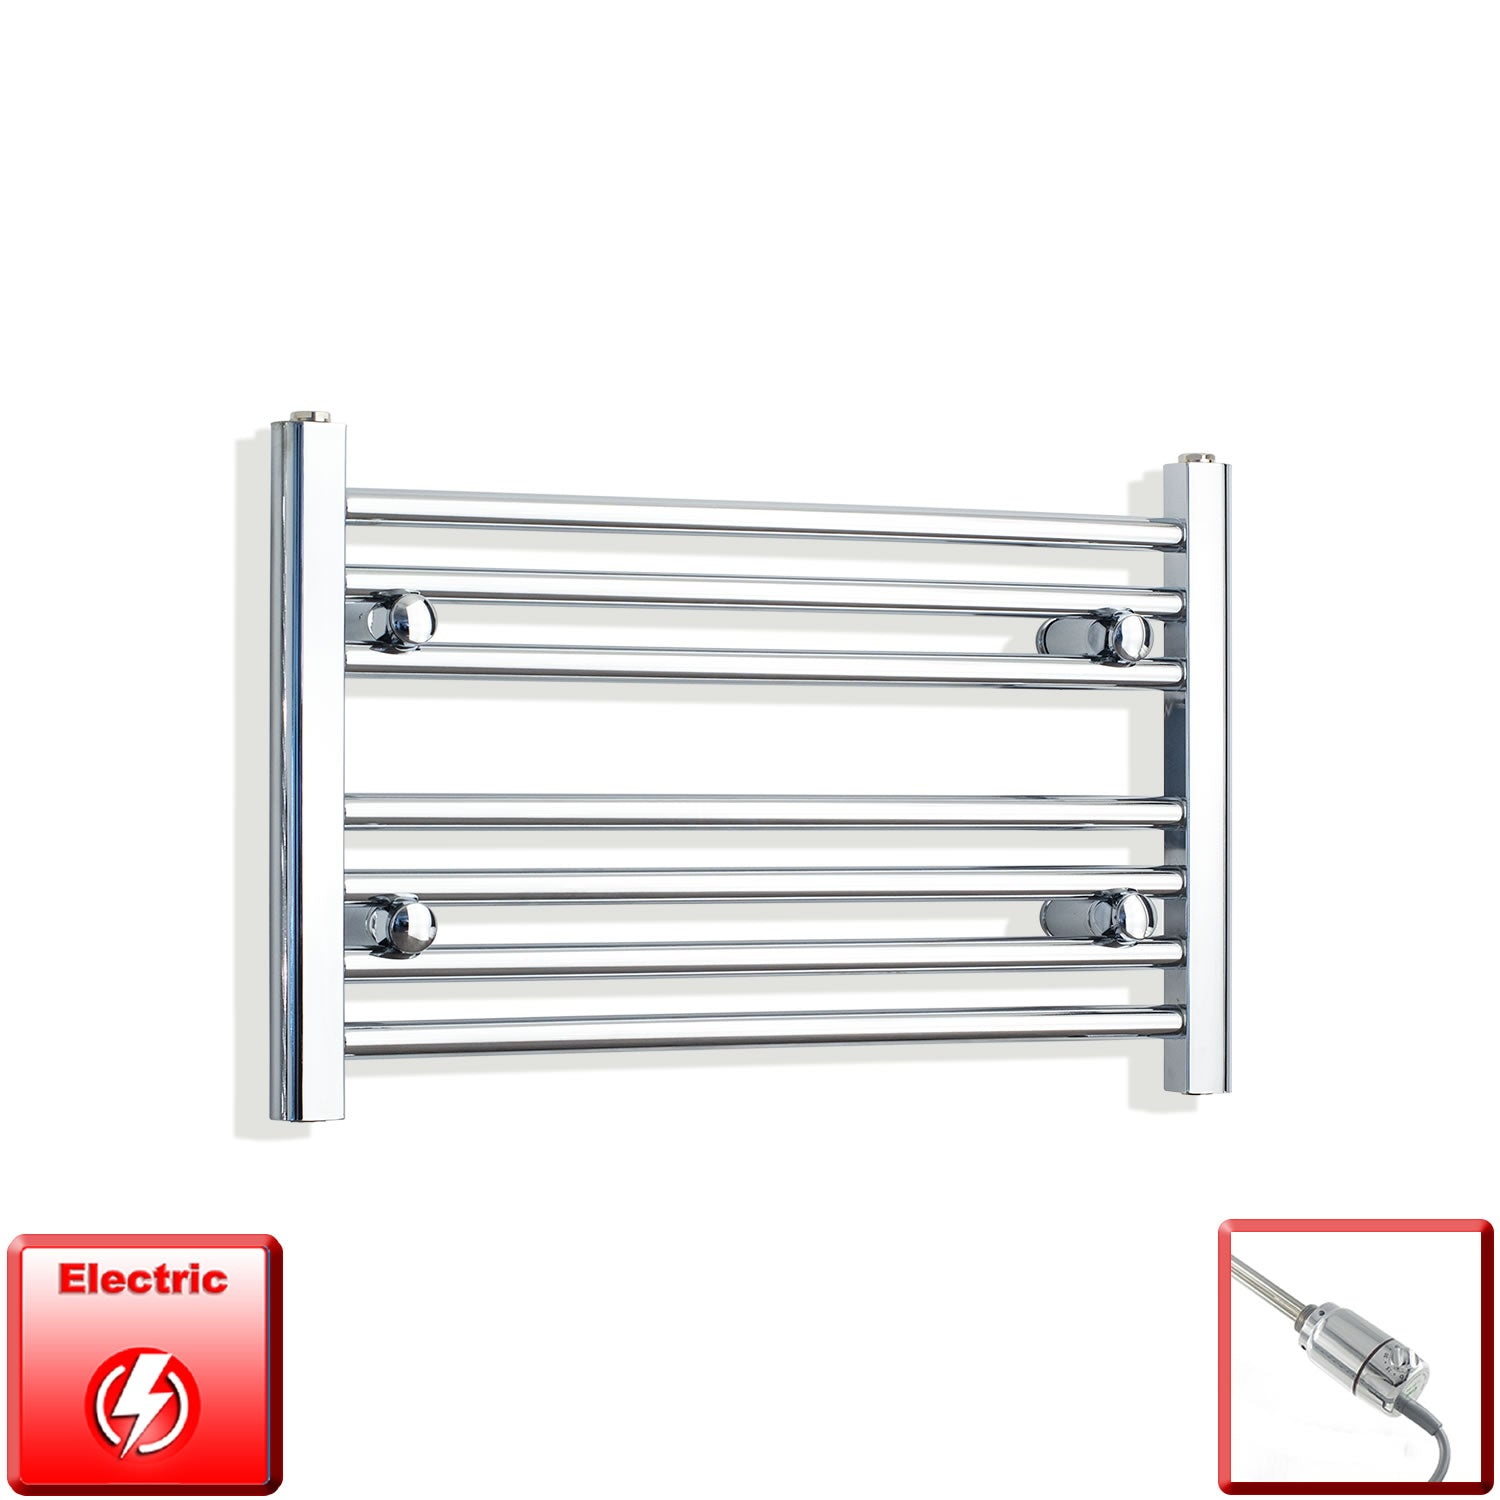 650mm Wide 400mm High Pre-Filled Chrome Electric Towel Rail Radiator With Thermostatic GT Element